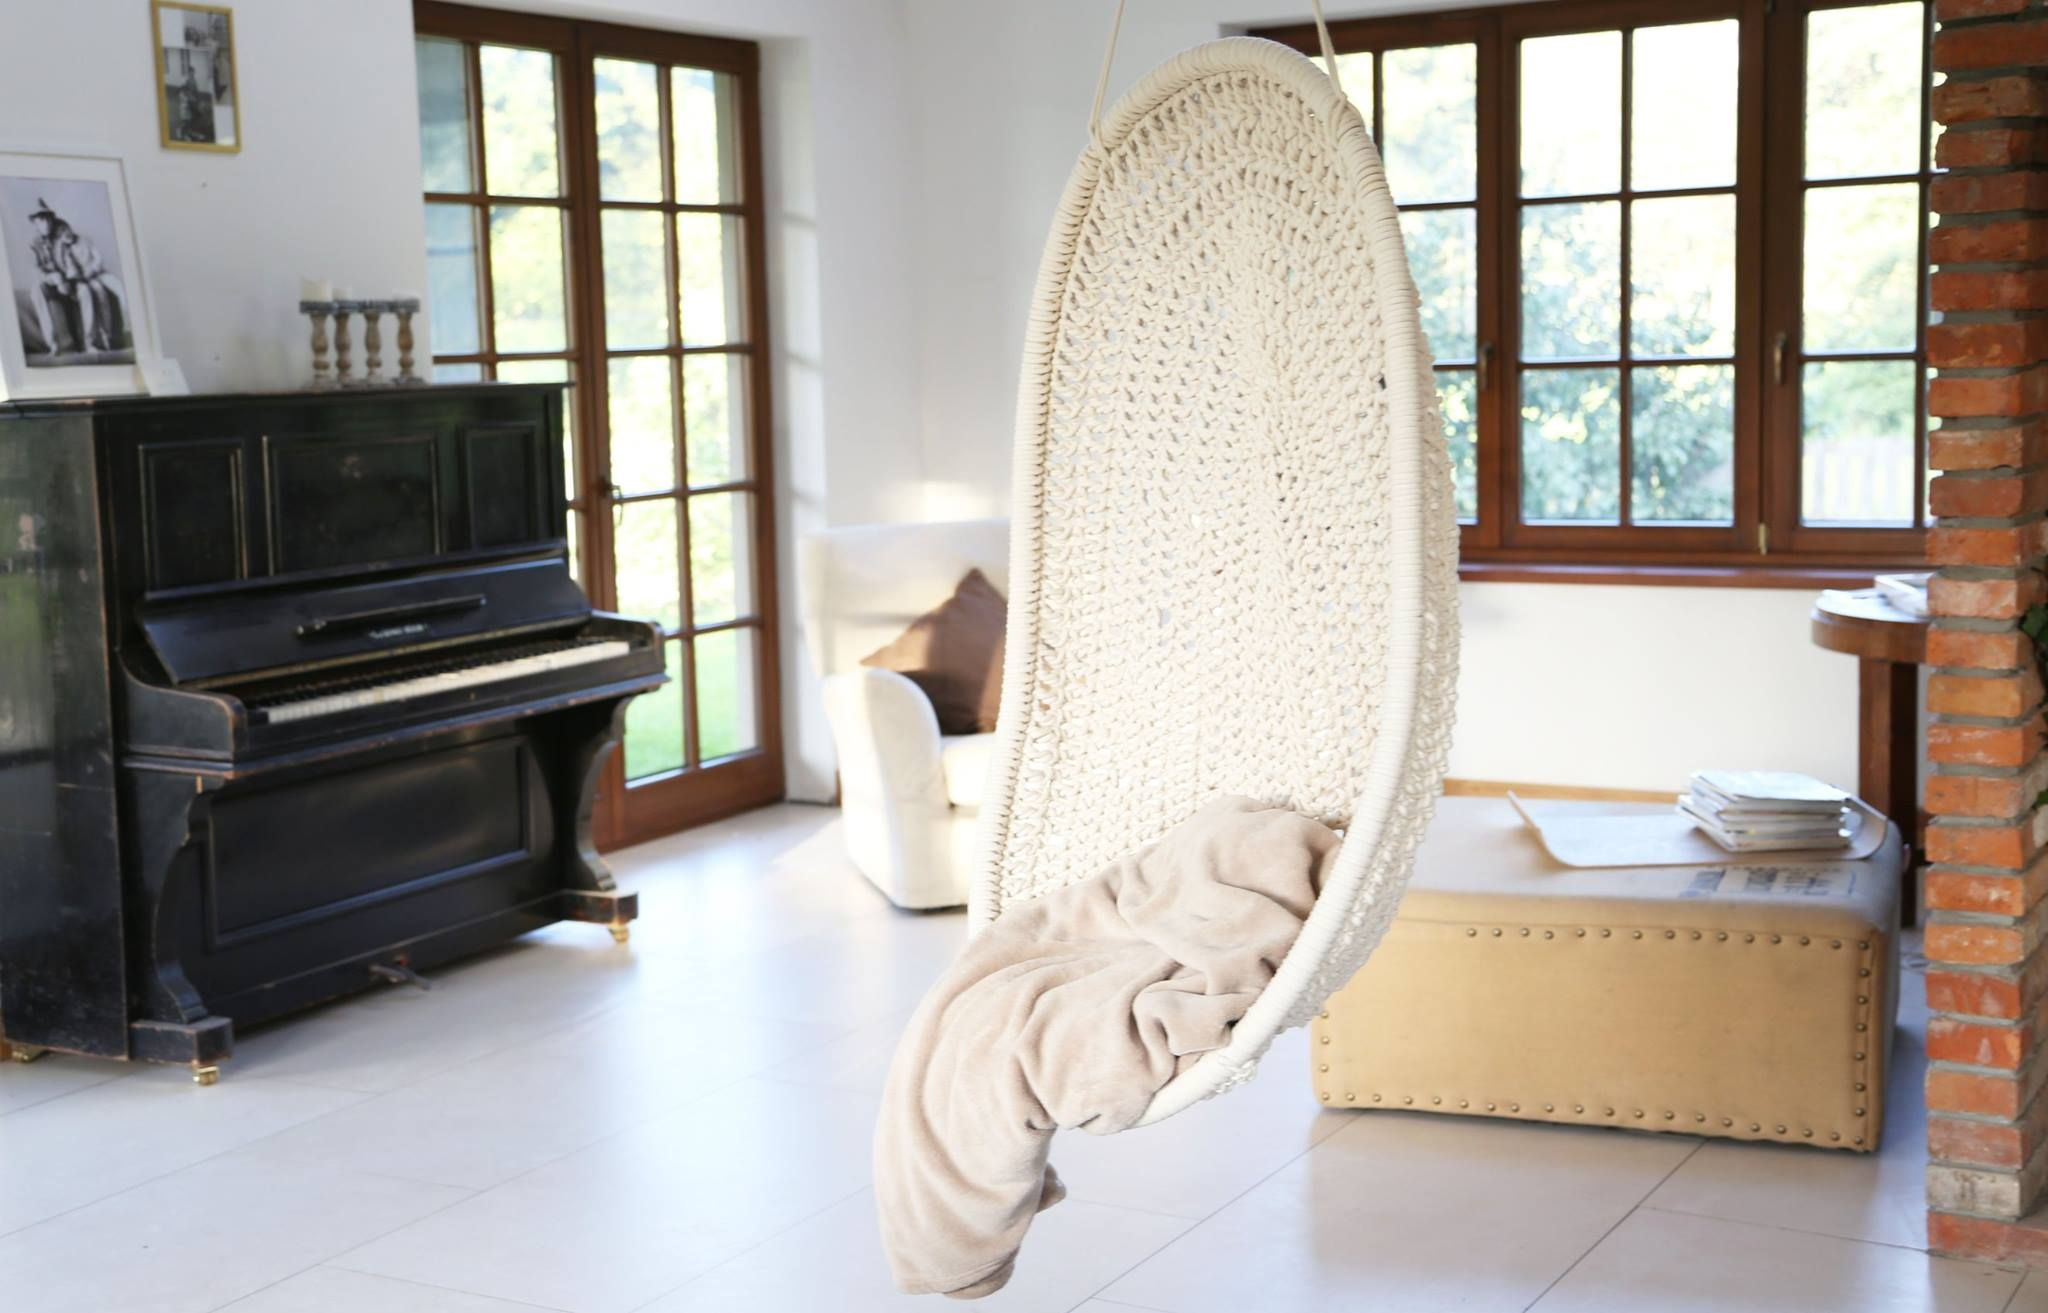 Indoor hammock crocheted or knitted ucliving roomsue pinterest